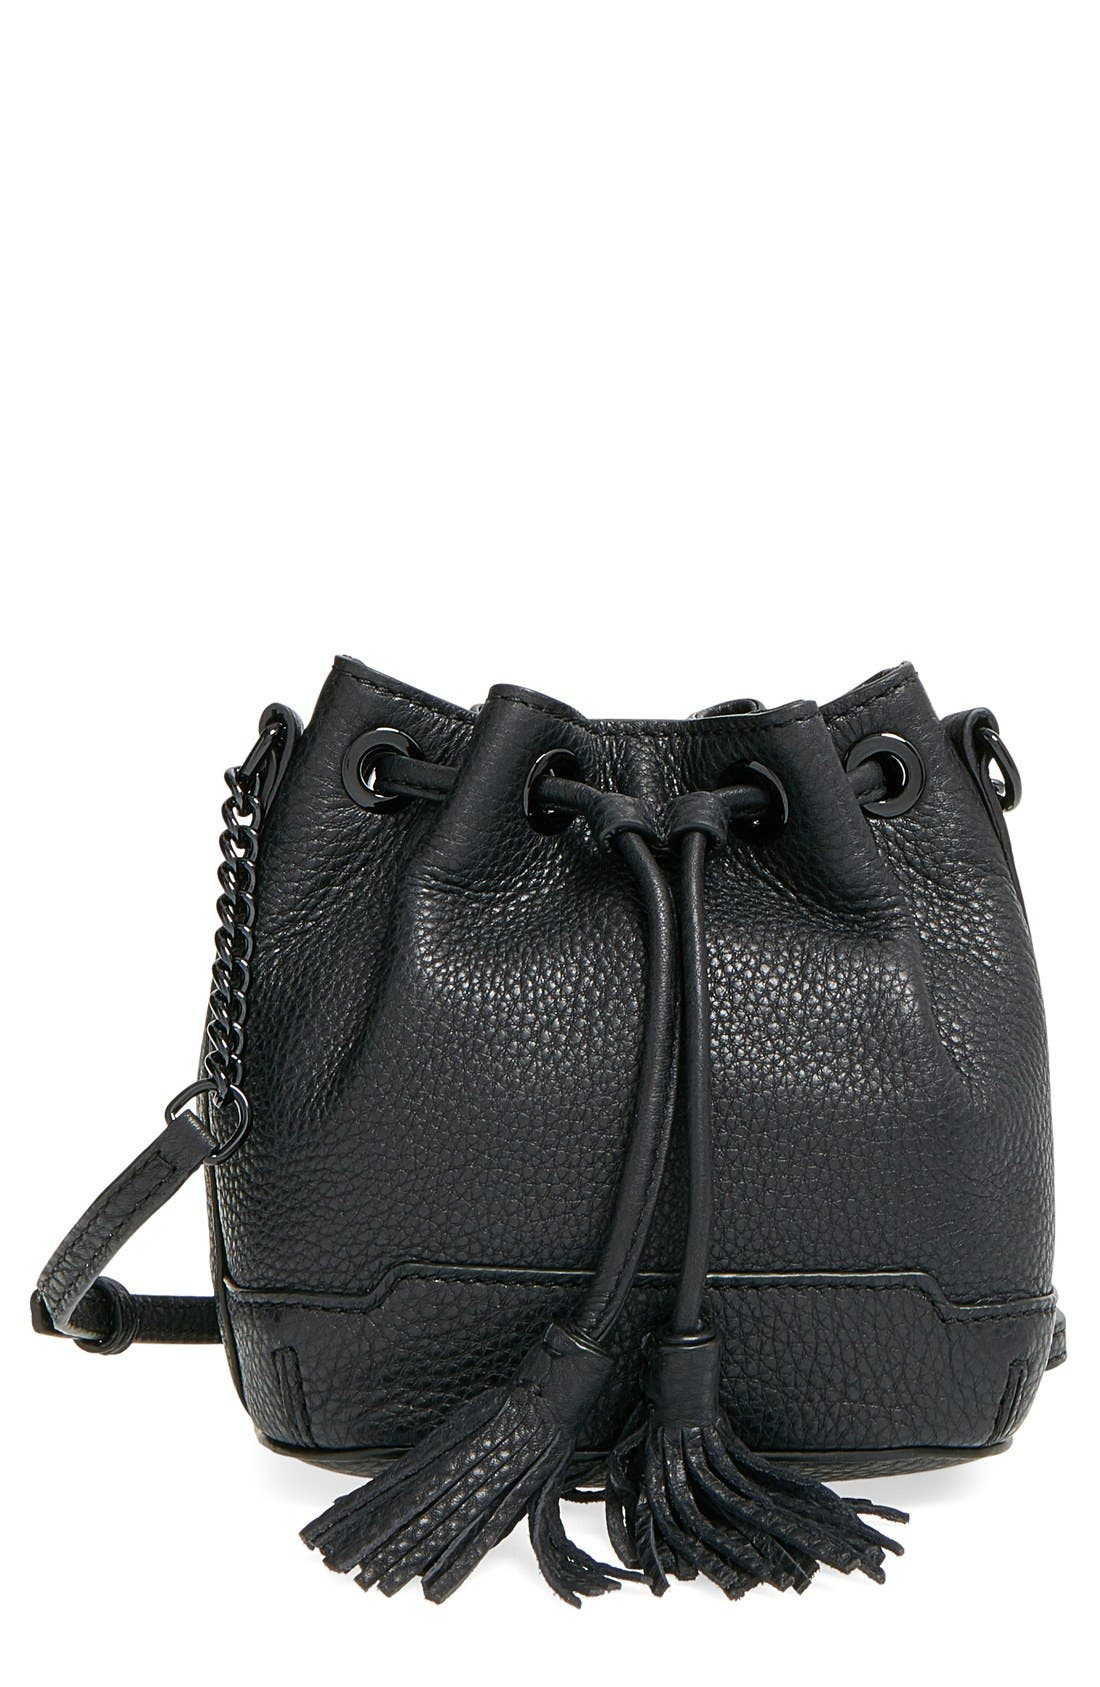 'Micro Lexi' Bucket Bag,                             Main thumbnail 1, color,                             001